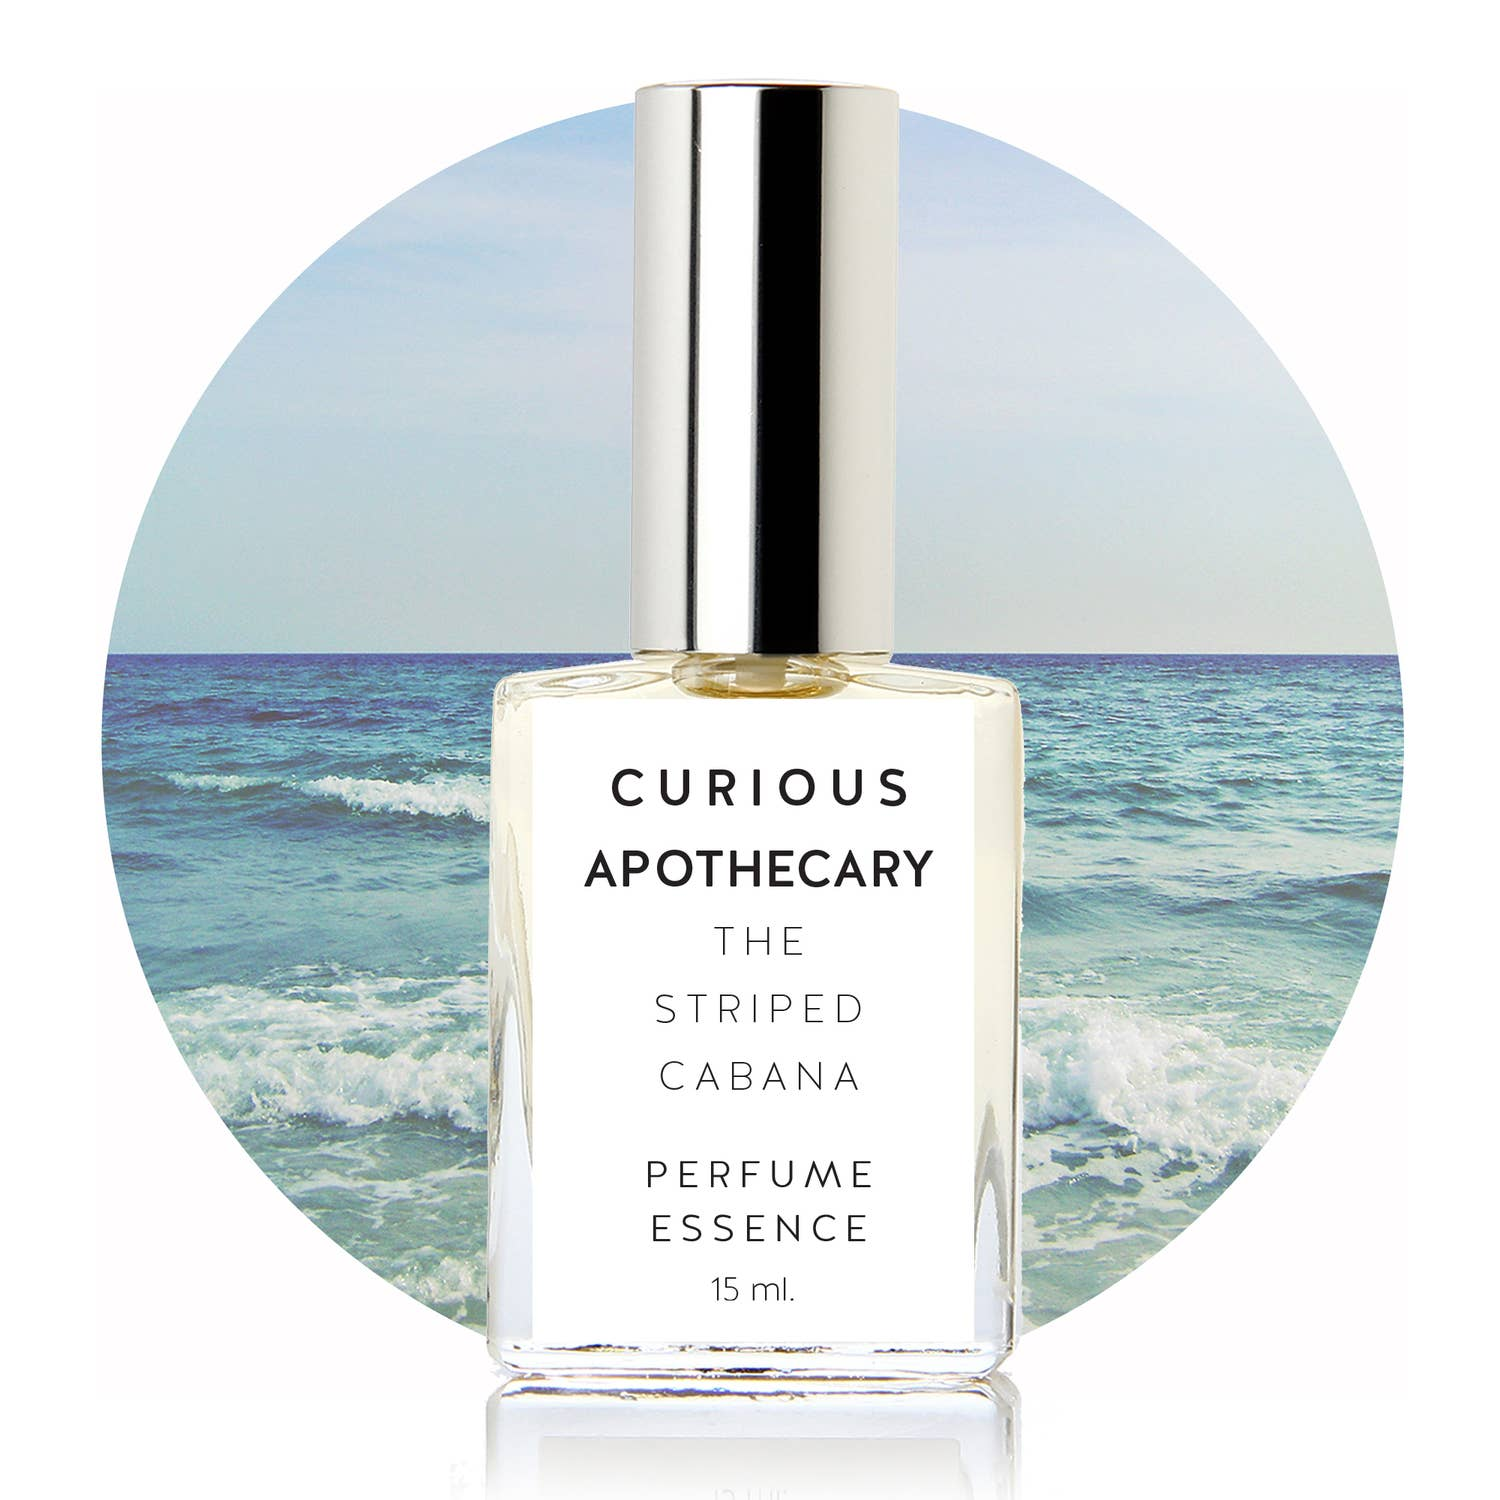 The Striped Cabana Perfume by Curious Apothecary